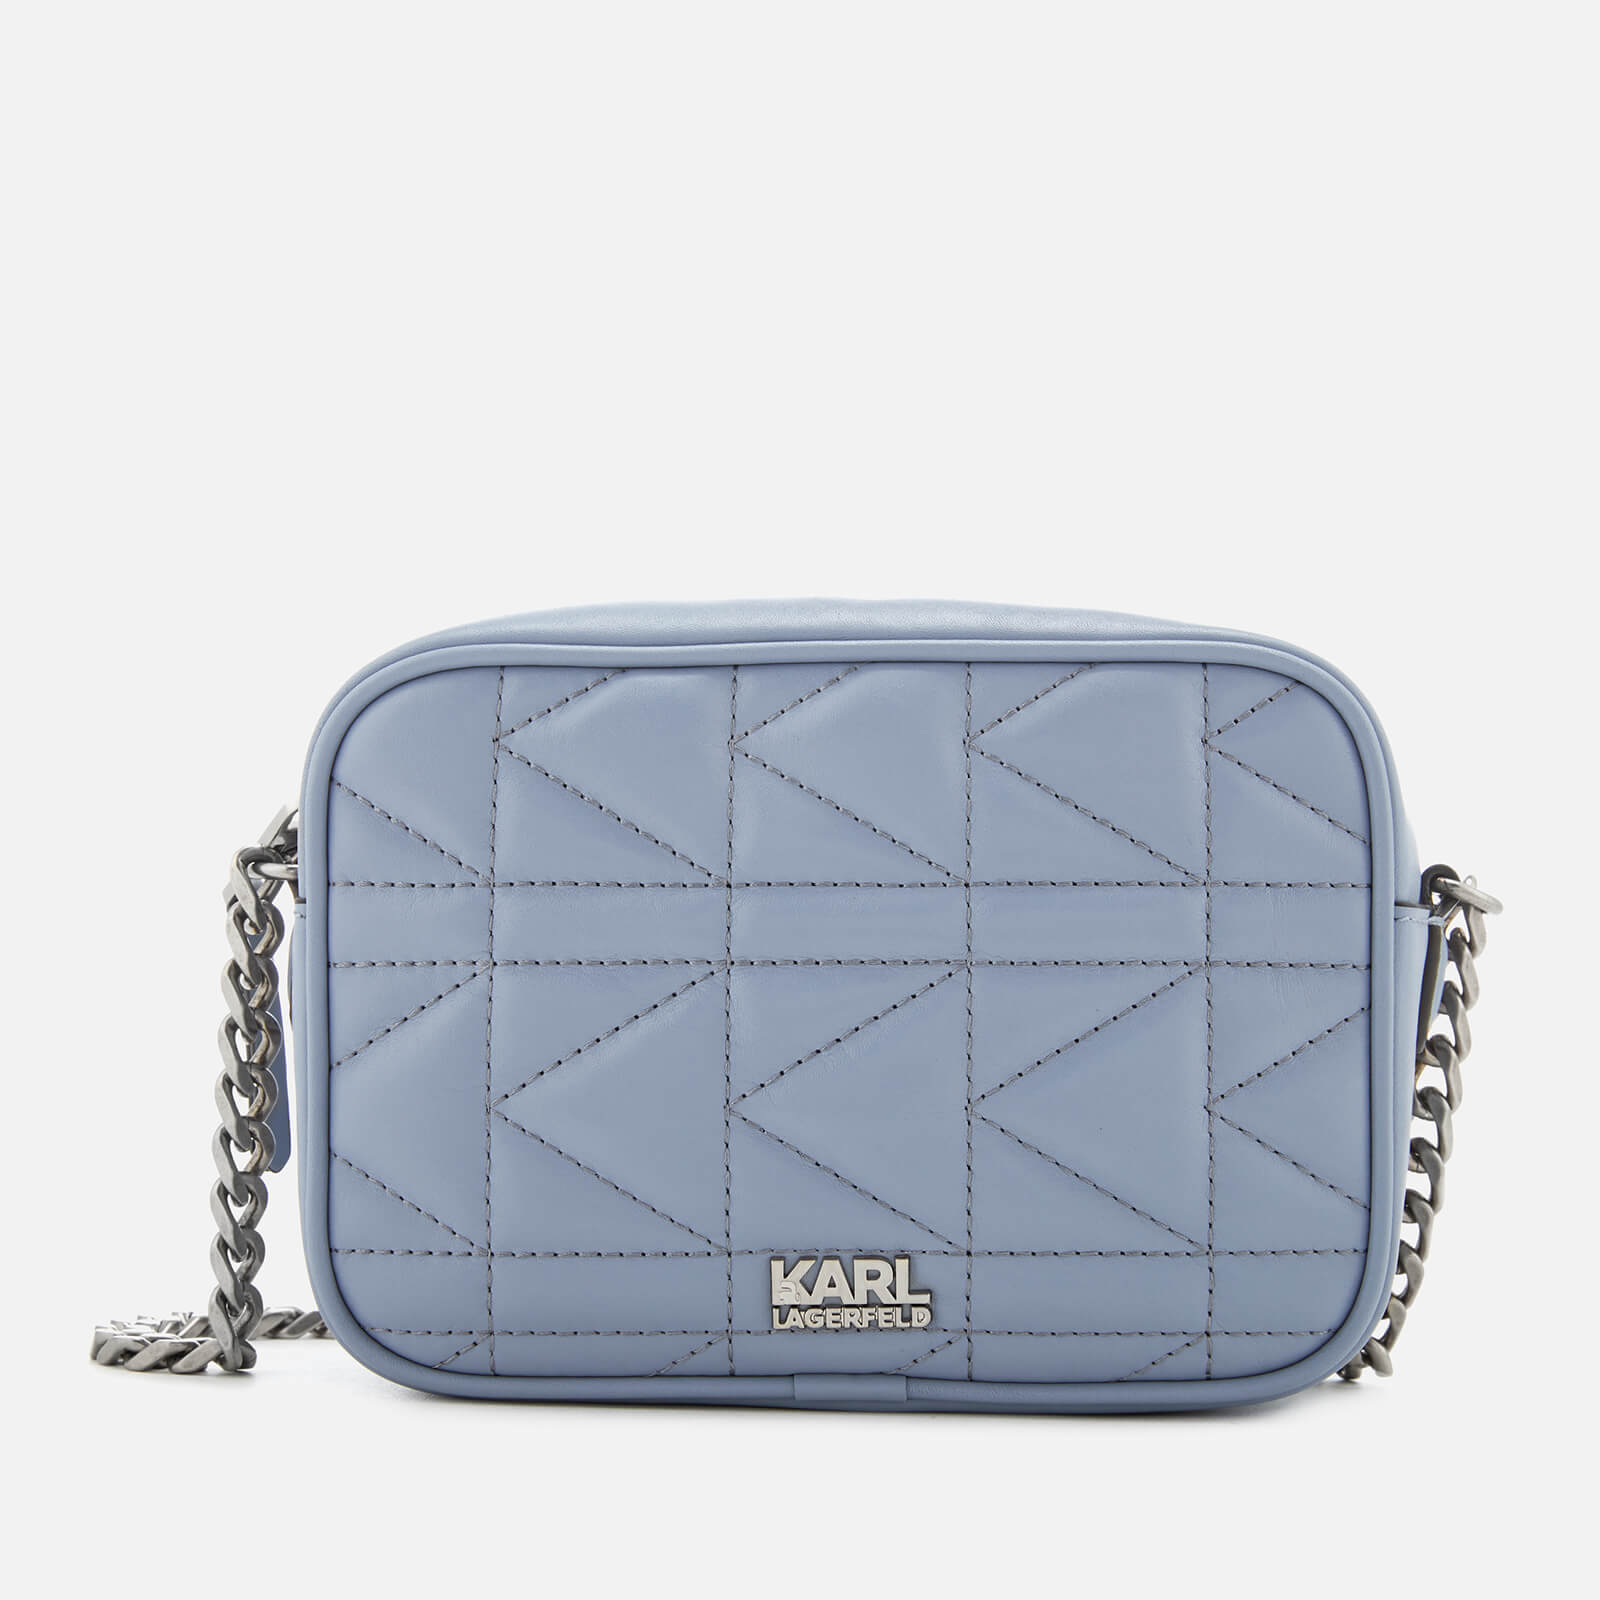 63777e6531f6 Karl Lagerfeld Women s K Kuilted Cross Body Bag - Mistic Blue - Free UK  Delivery over £50